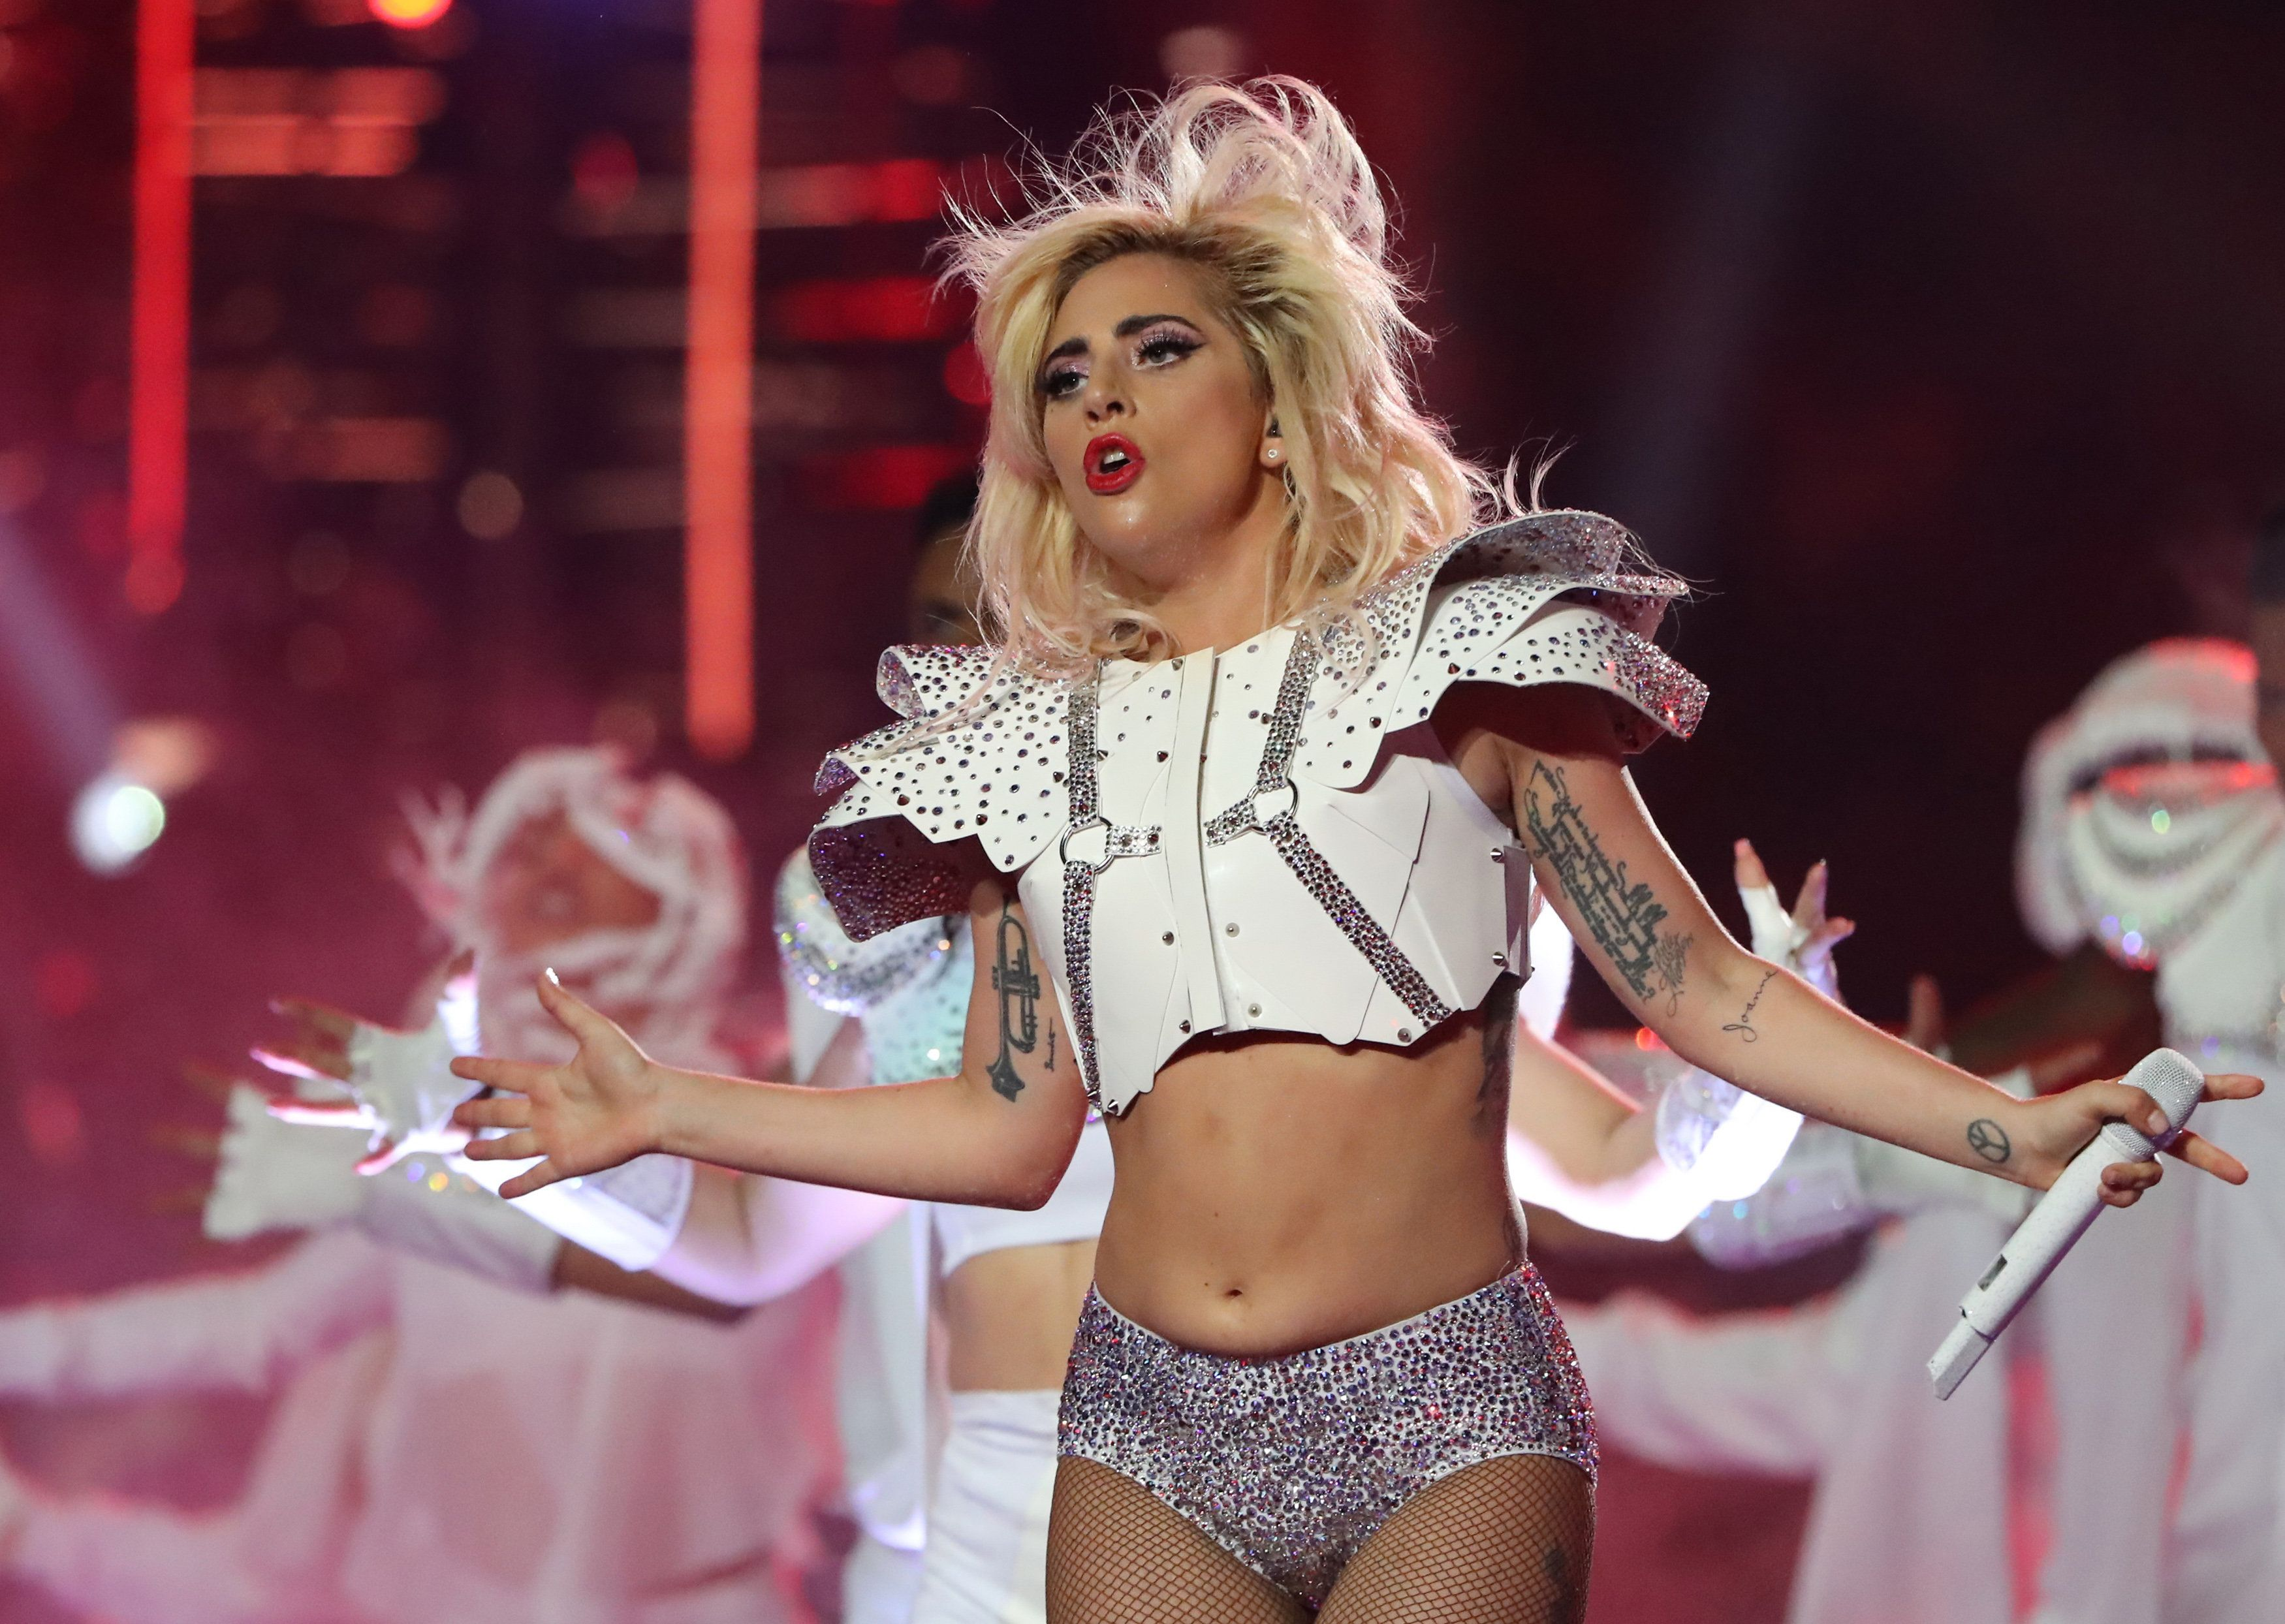 Lady Gaga Was Body-Shamed During Super Bowl Performance, The Little Monsters Weren't